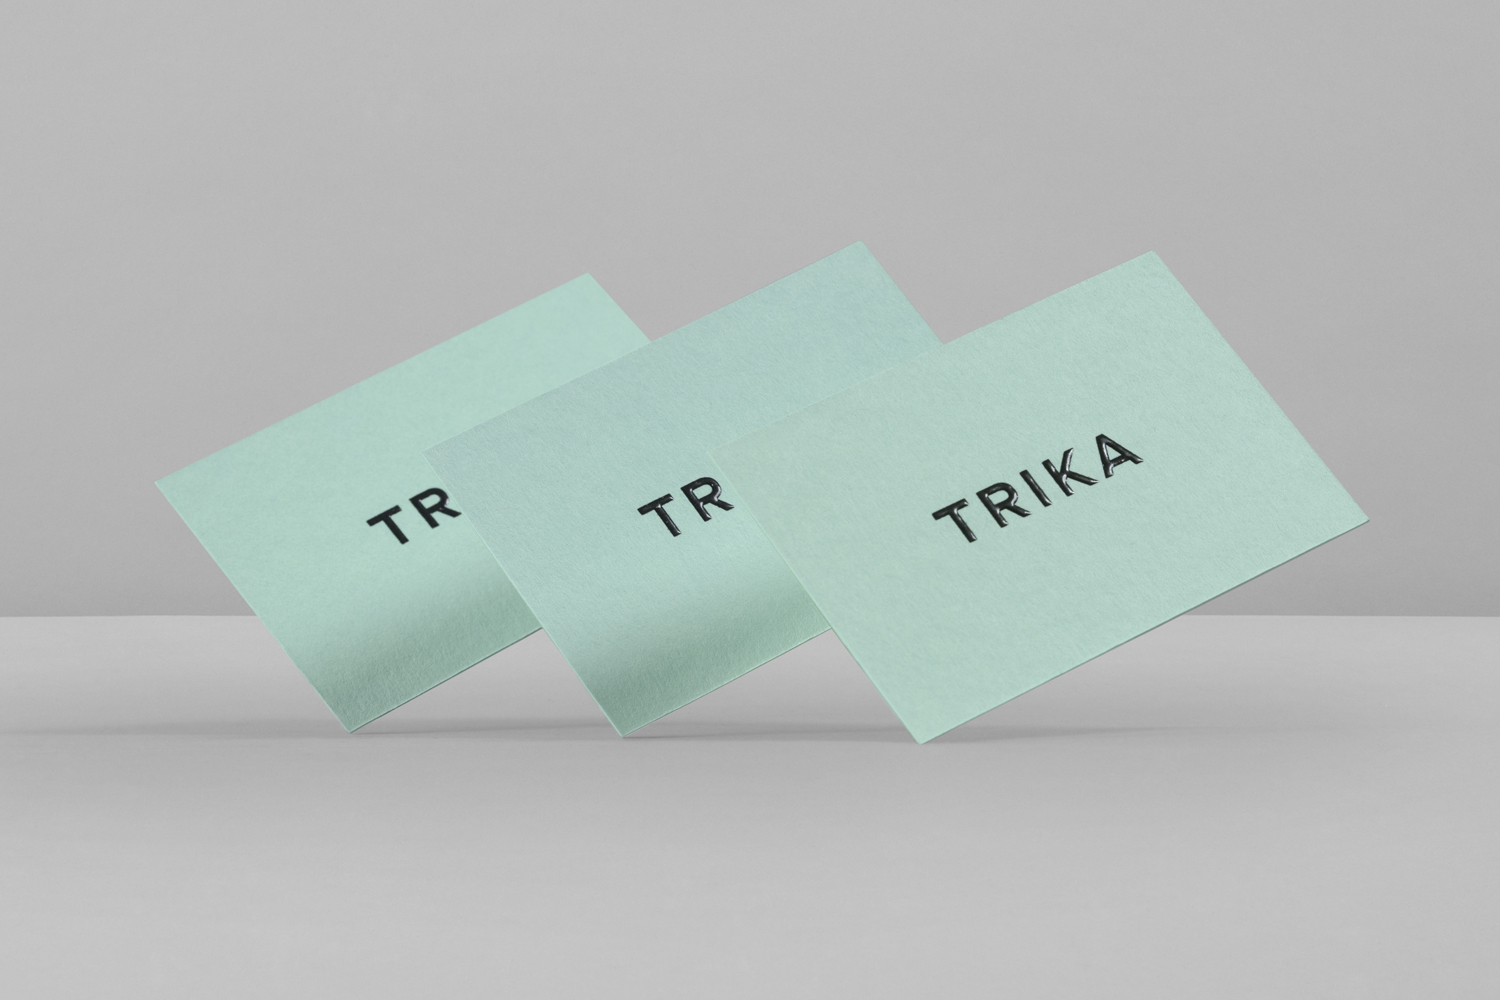 Brand identity and business cards with a thermographic ink print finish by UK design studio Bunch for Croatian interior design business Trika